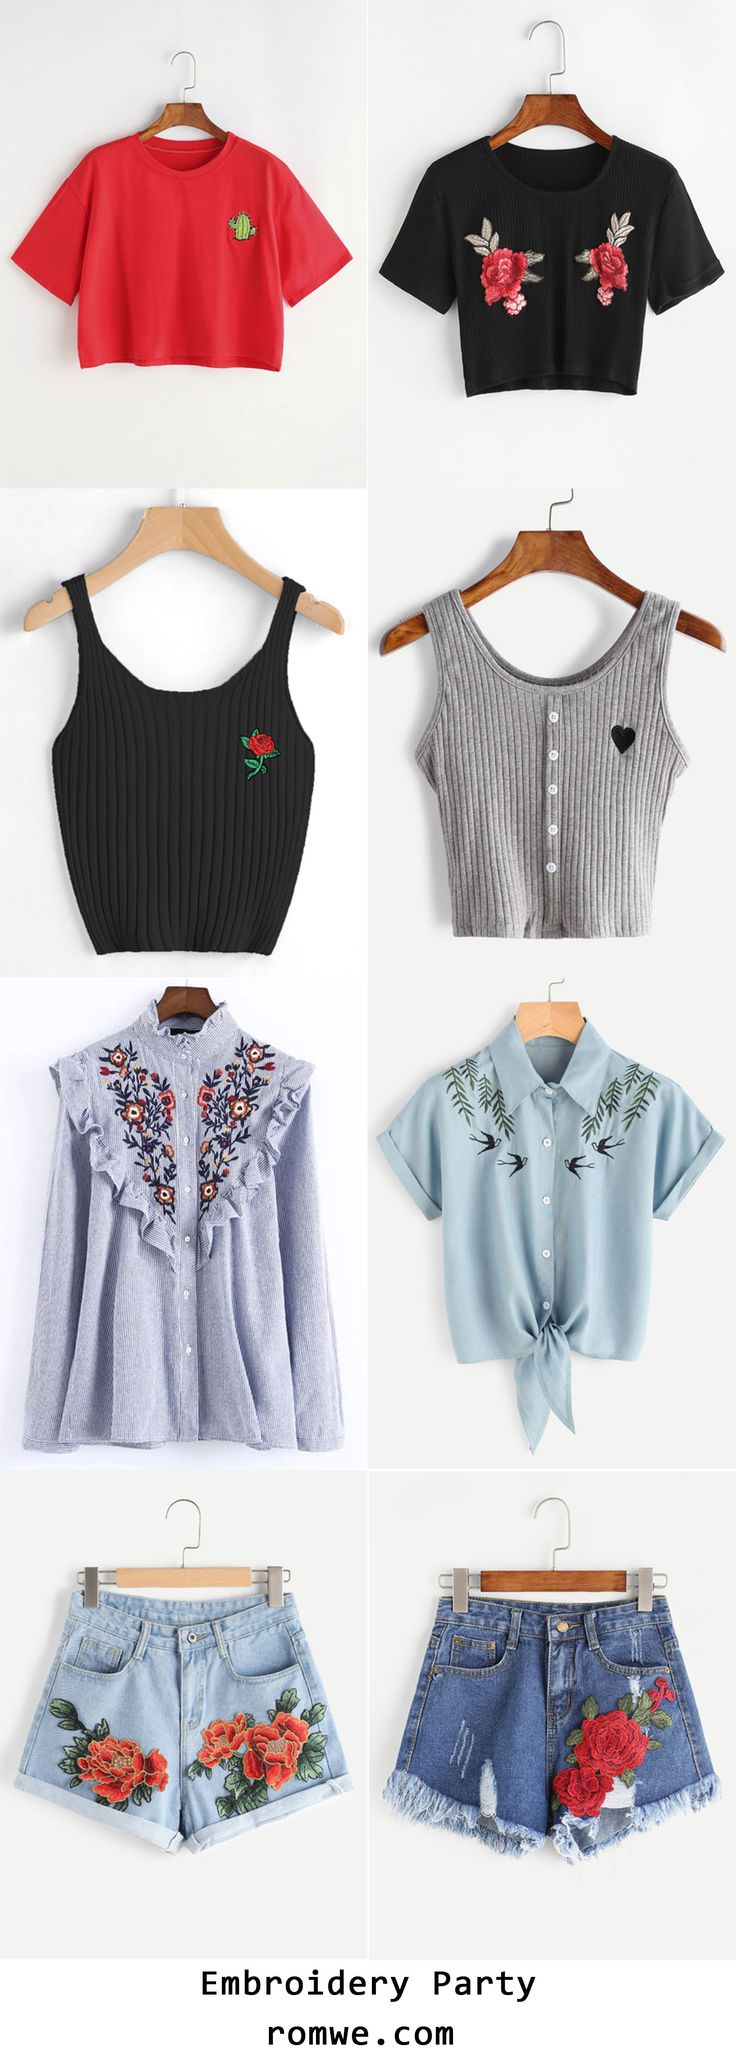 Embroidery Collection 2017 - romwe.com